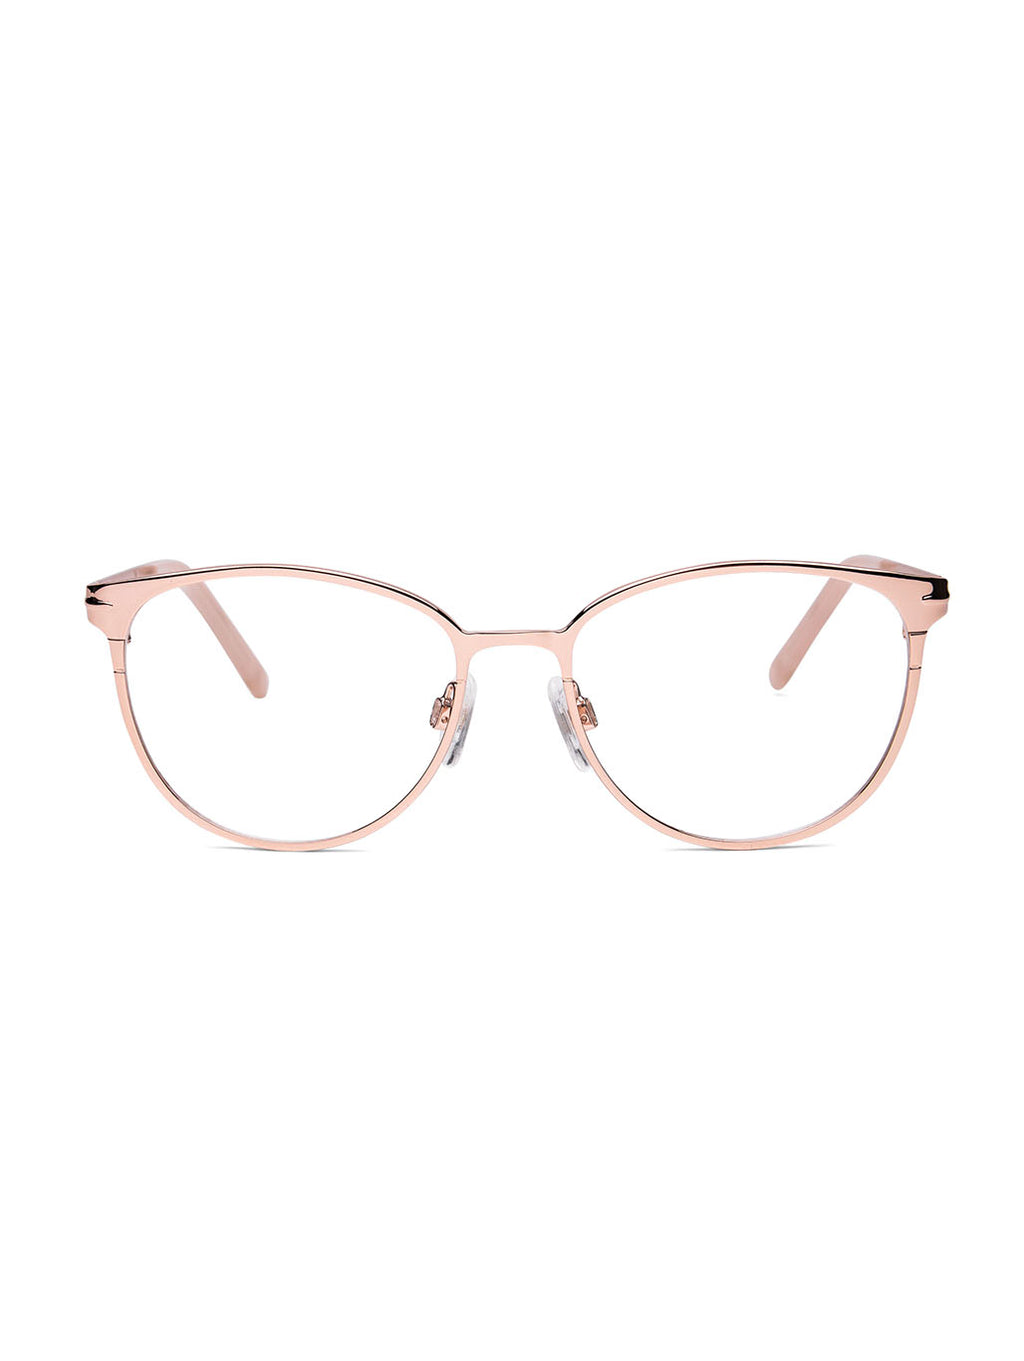 Flair - Rose Gold - Image 1